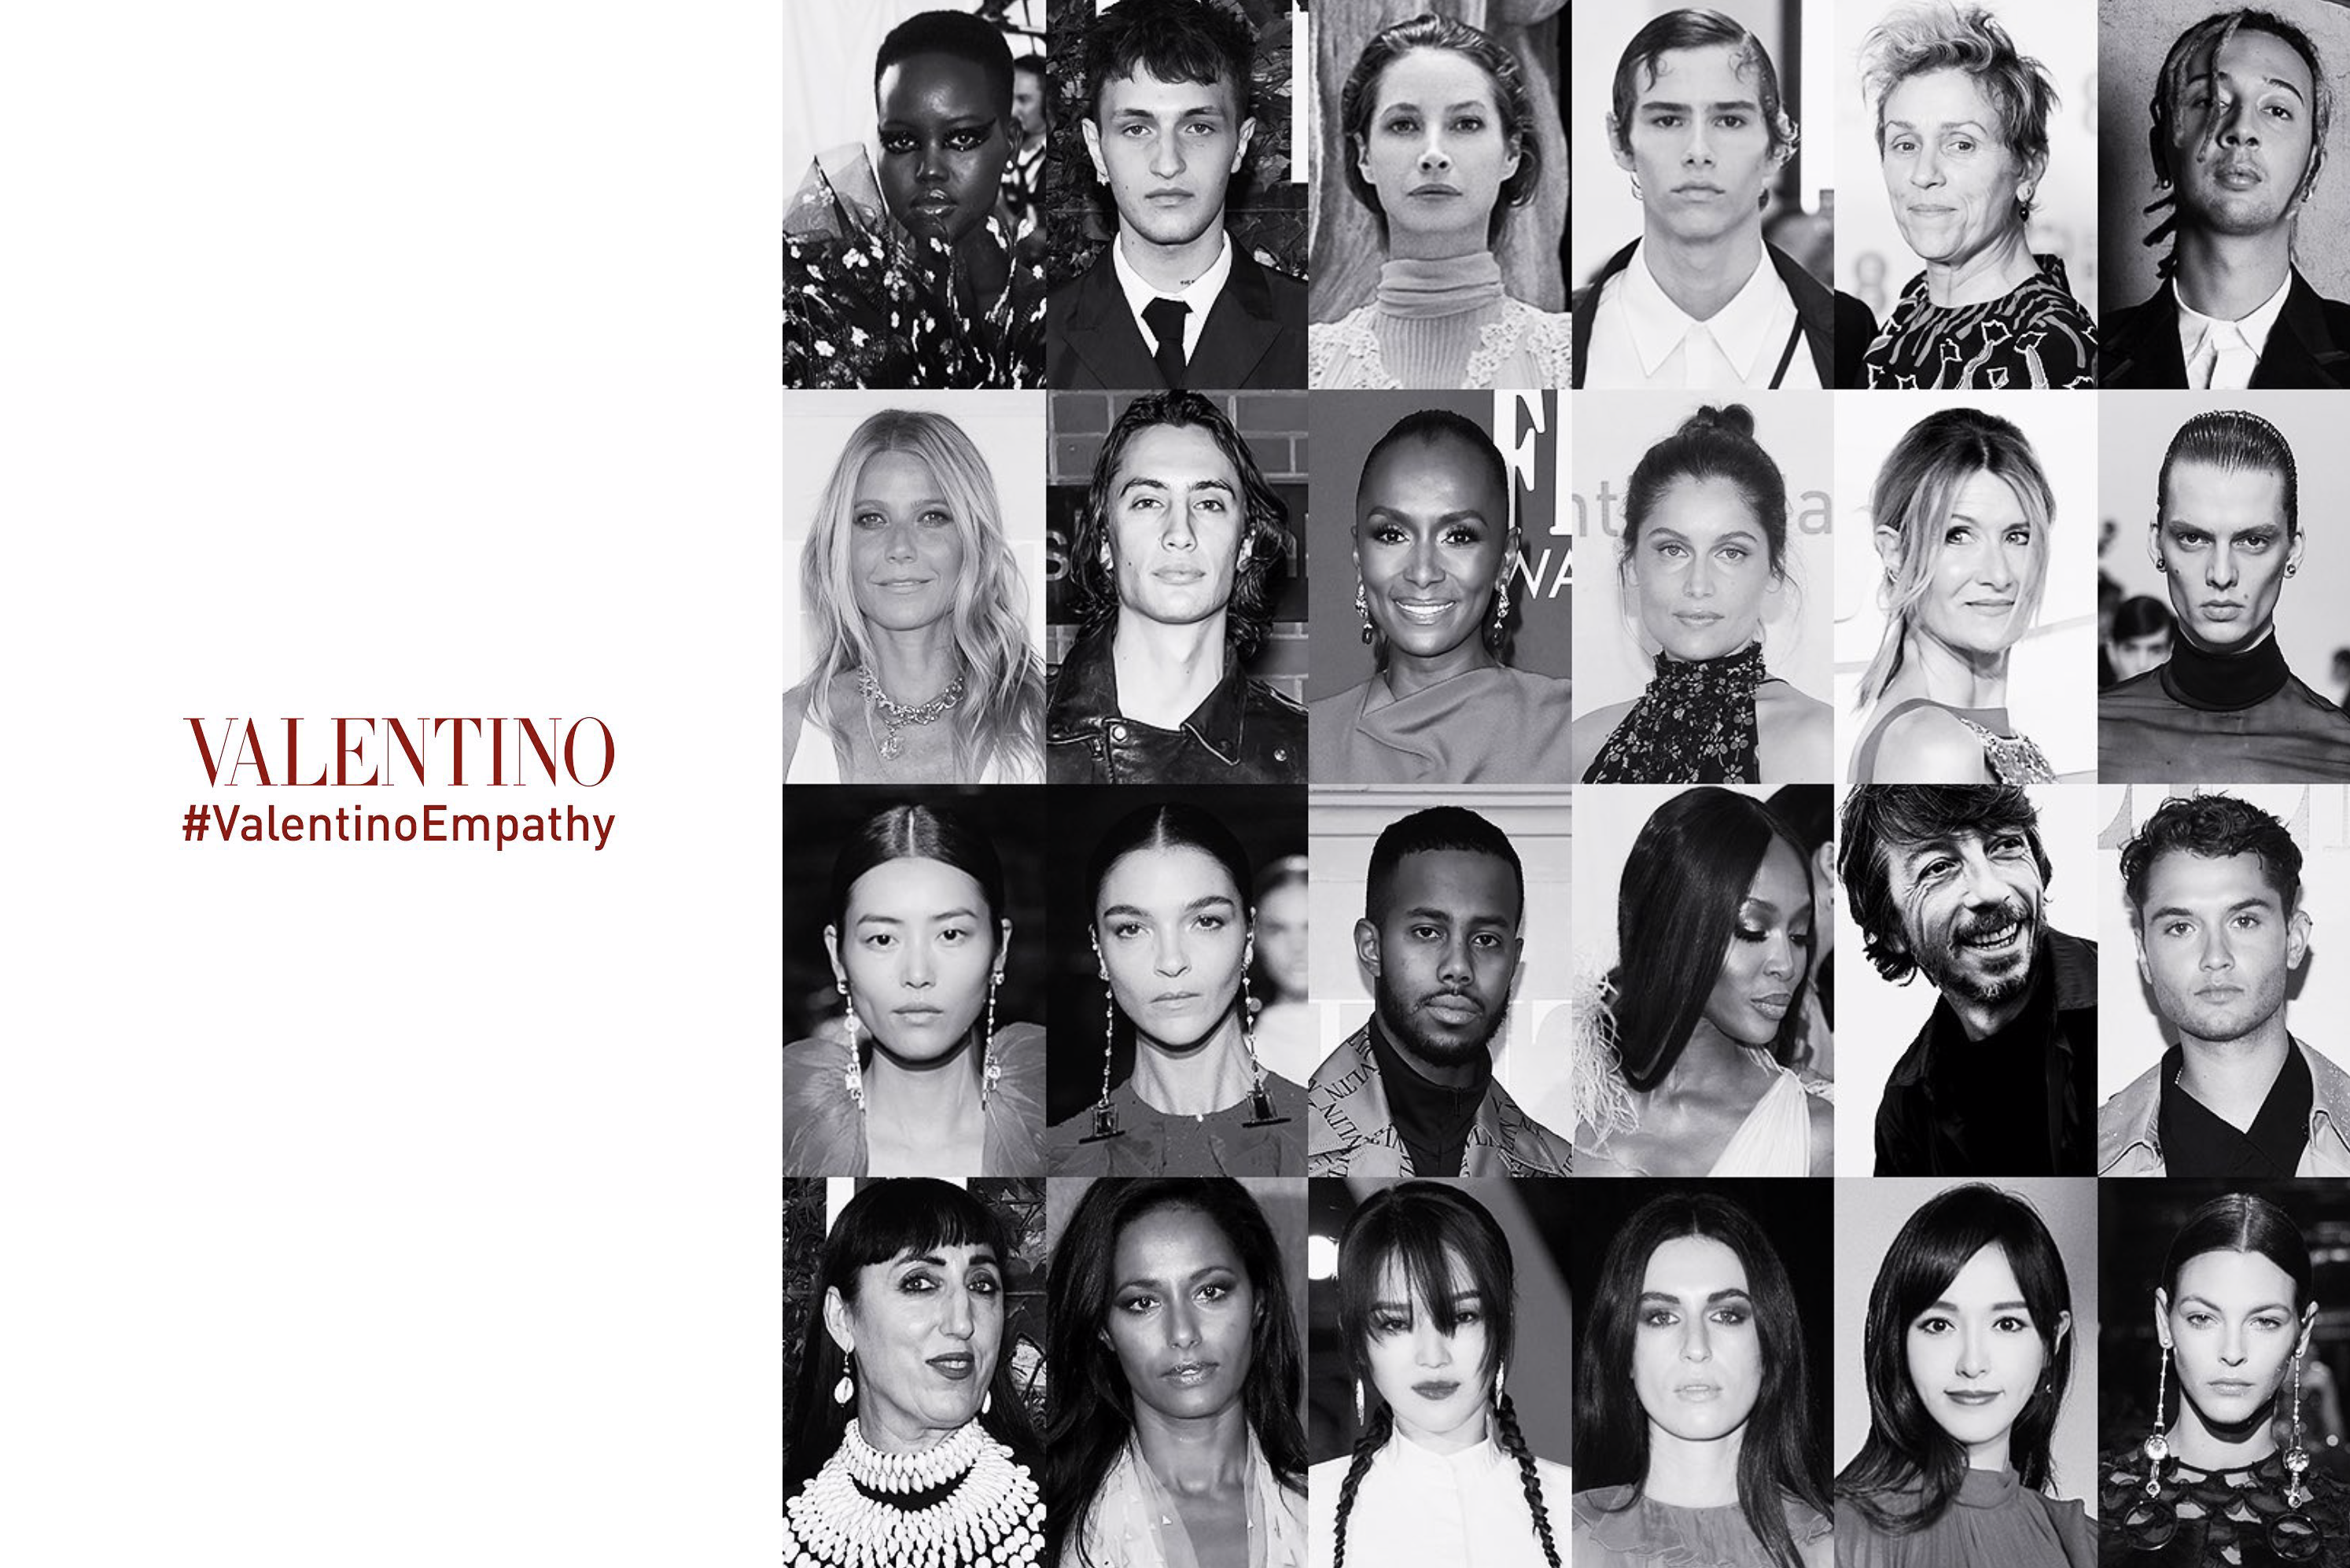 Valentino's Fall Ad Campaign Centers on Empathy With Diverse Cast Shot in Their Homes